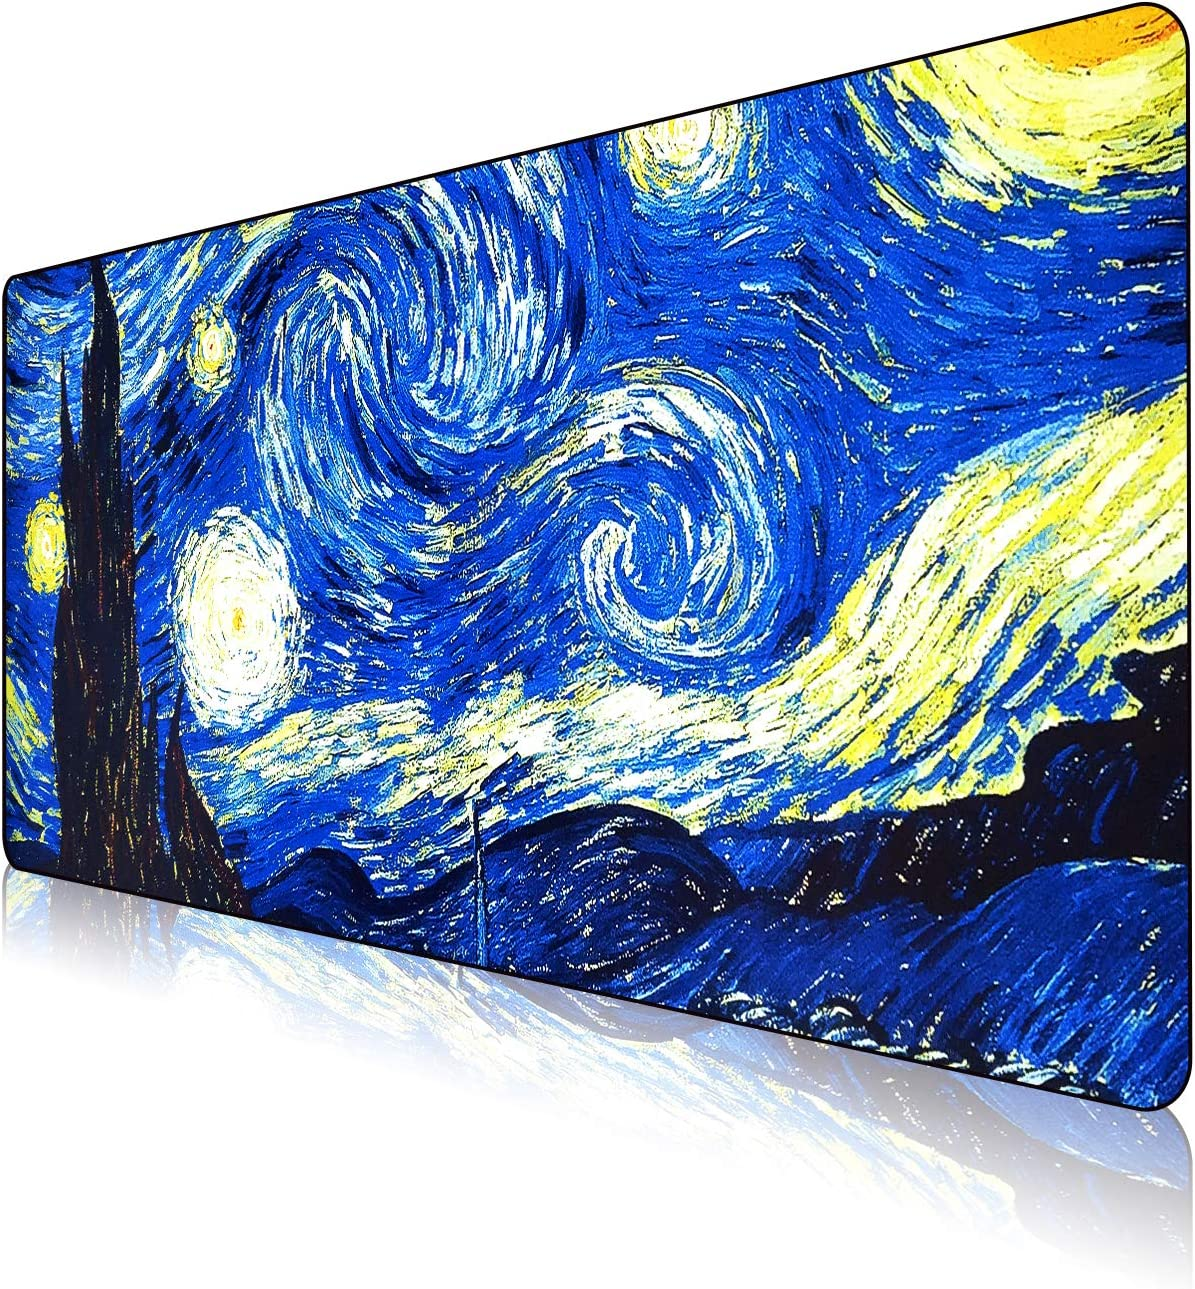 NJHX Large Gaming Mouse Pad- Waterproof XXL Long Extended Keyboard Mat(35.4x15.7x0.16In), Starry Night…